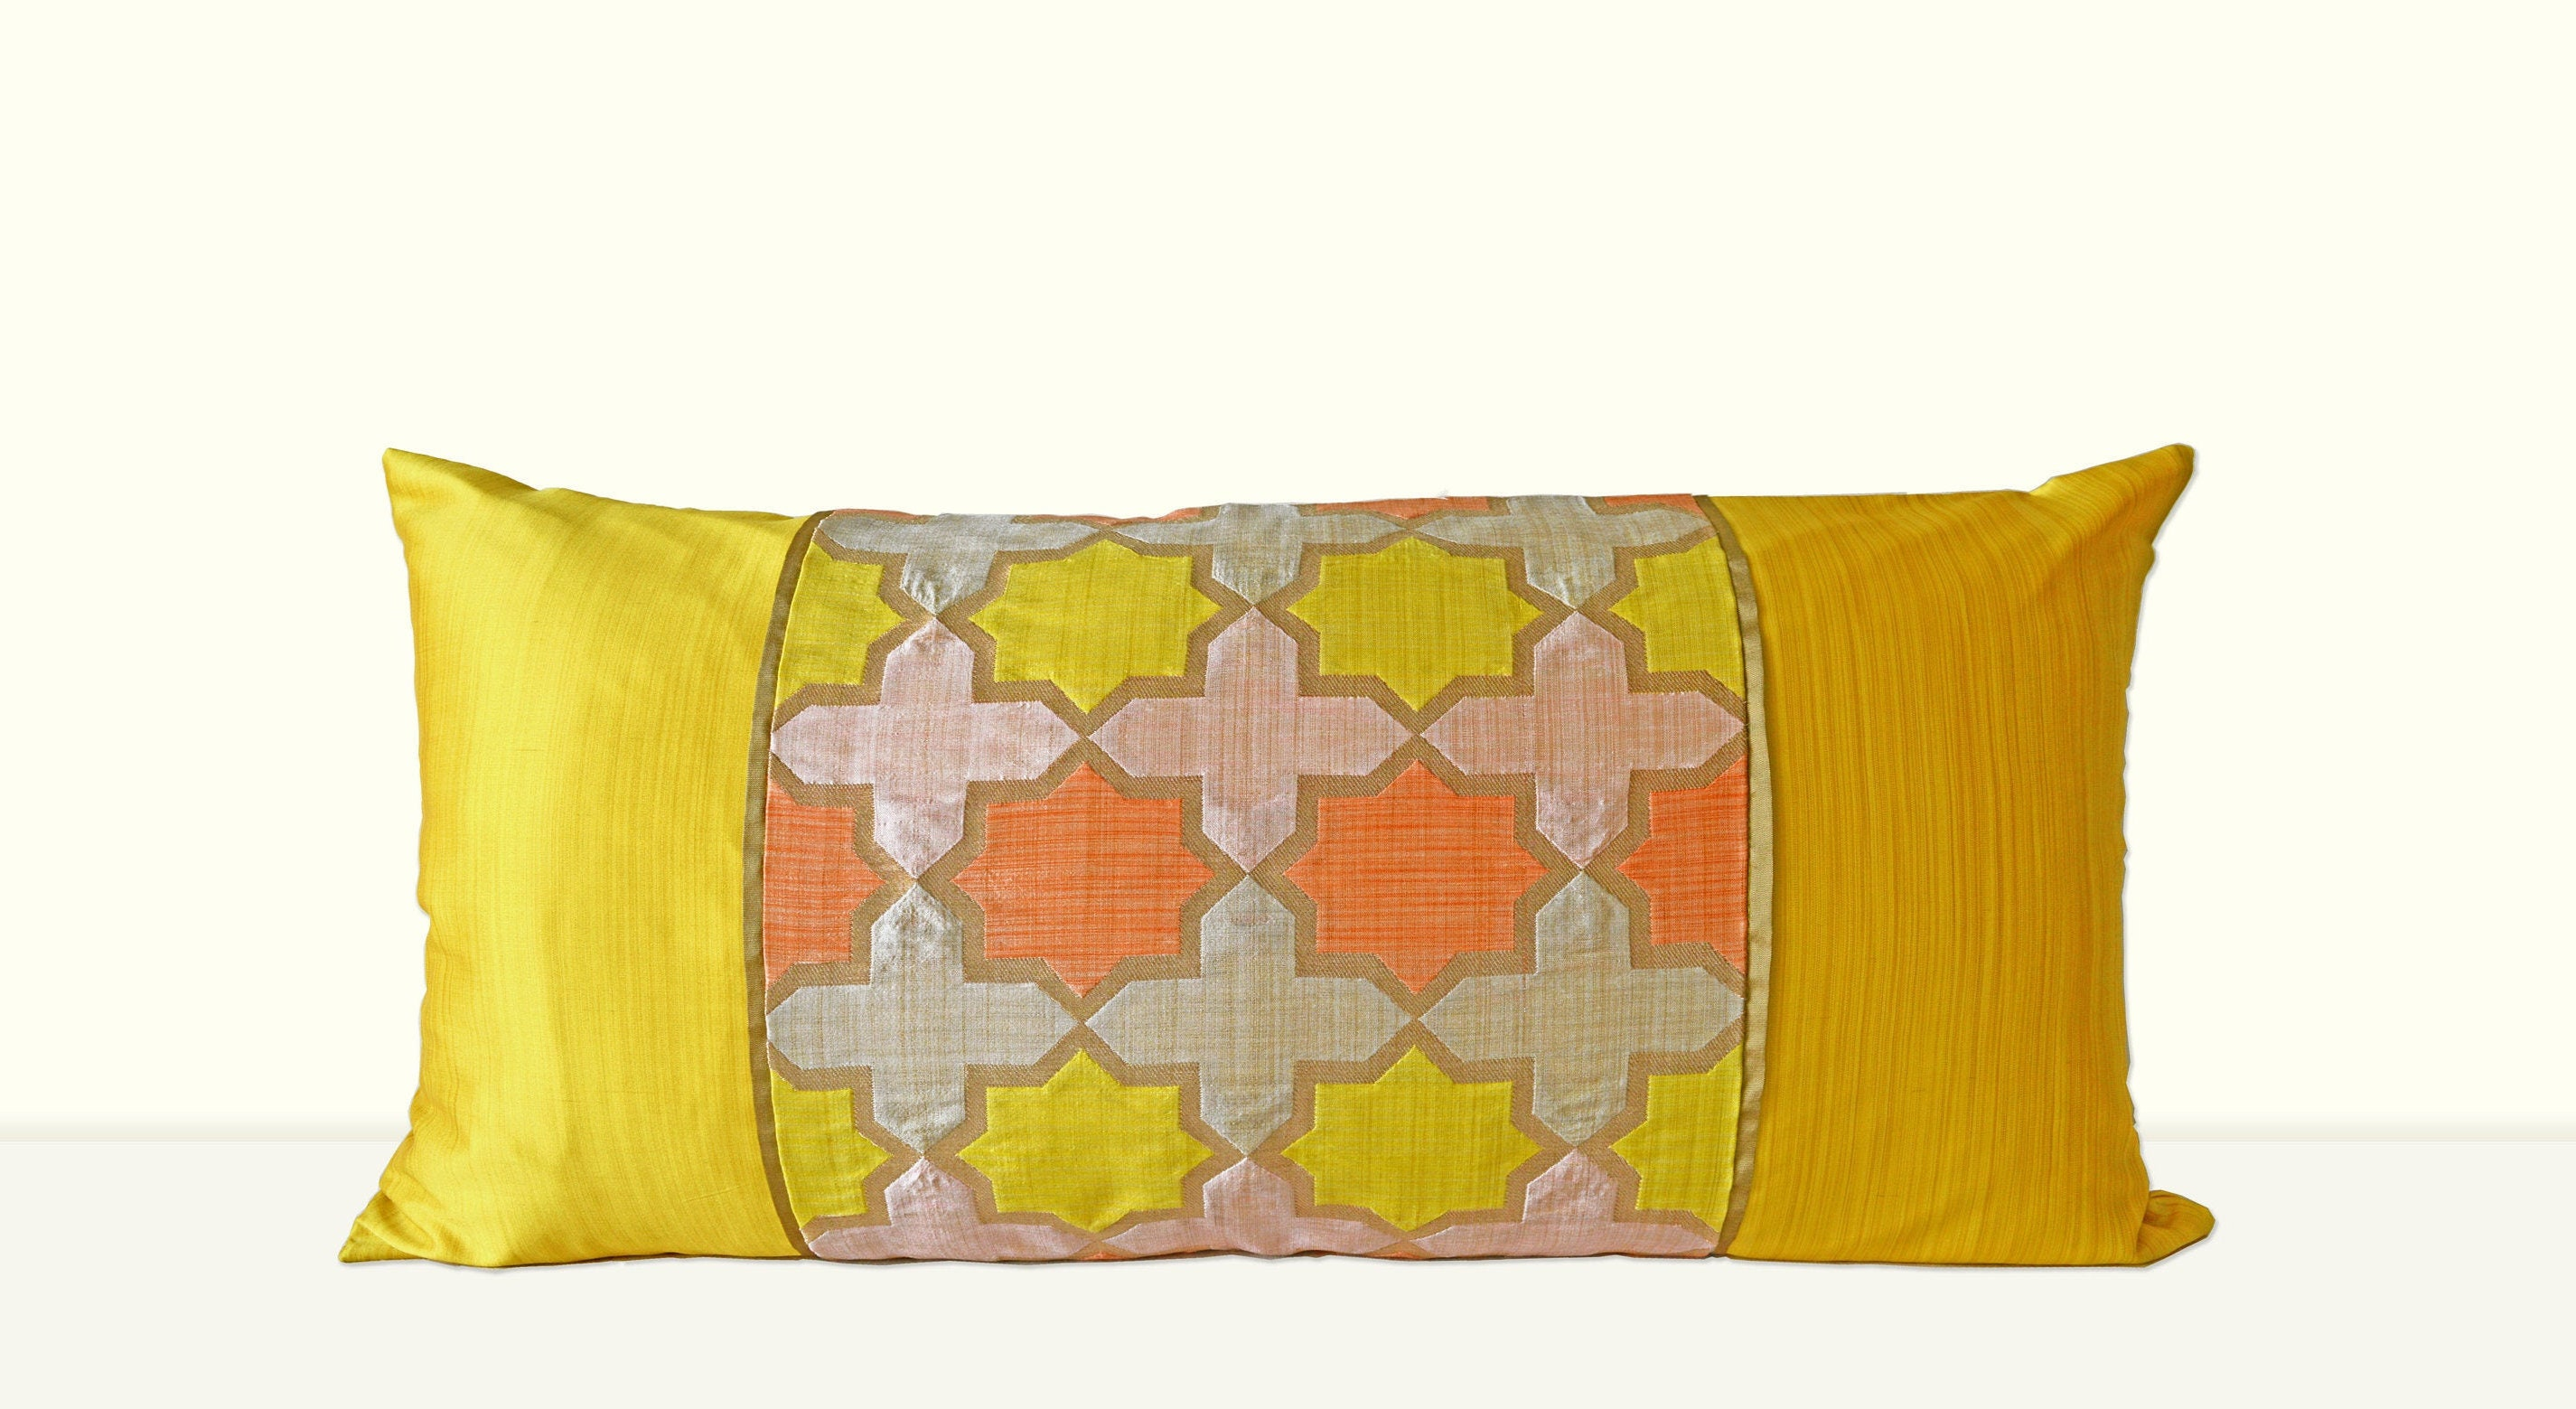 YELLOW Decorative Pillow Case Cover